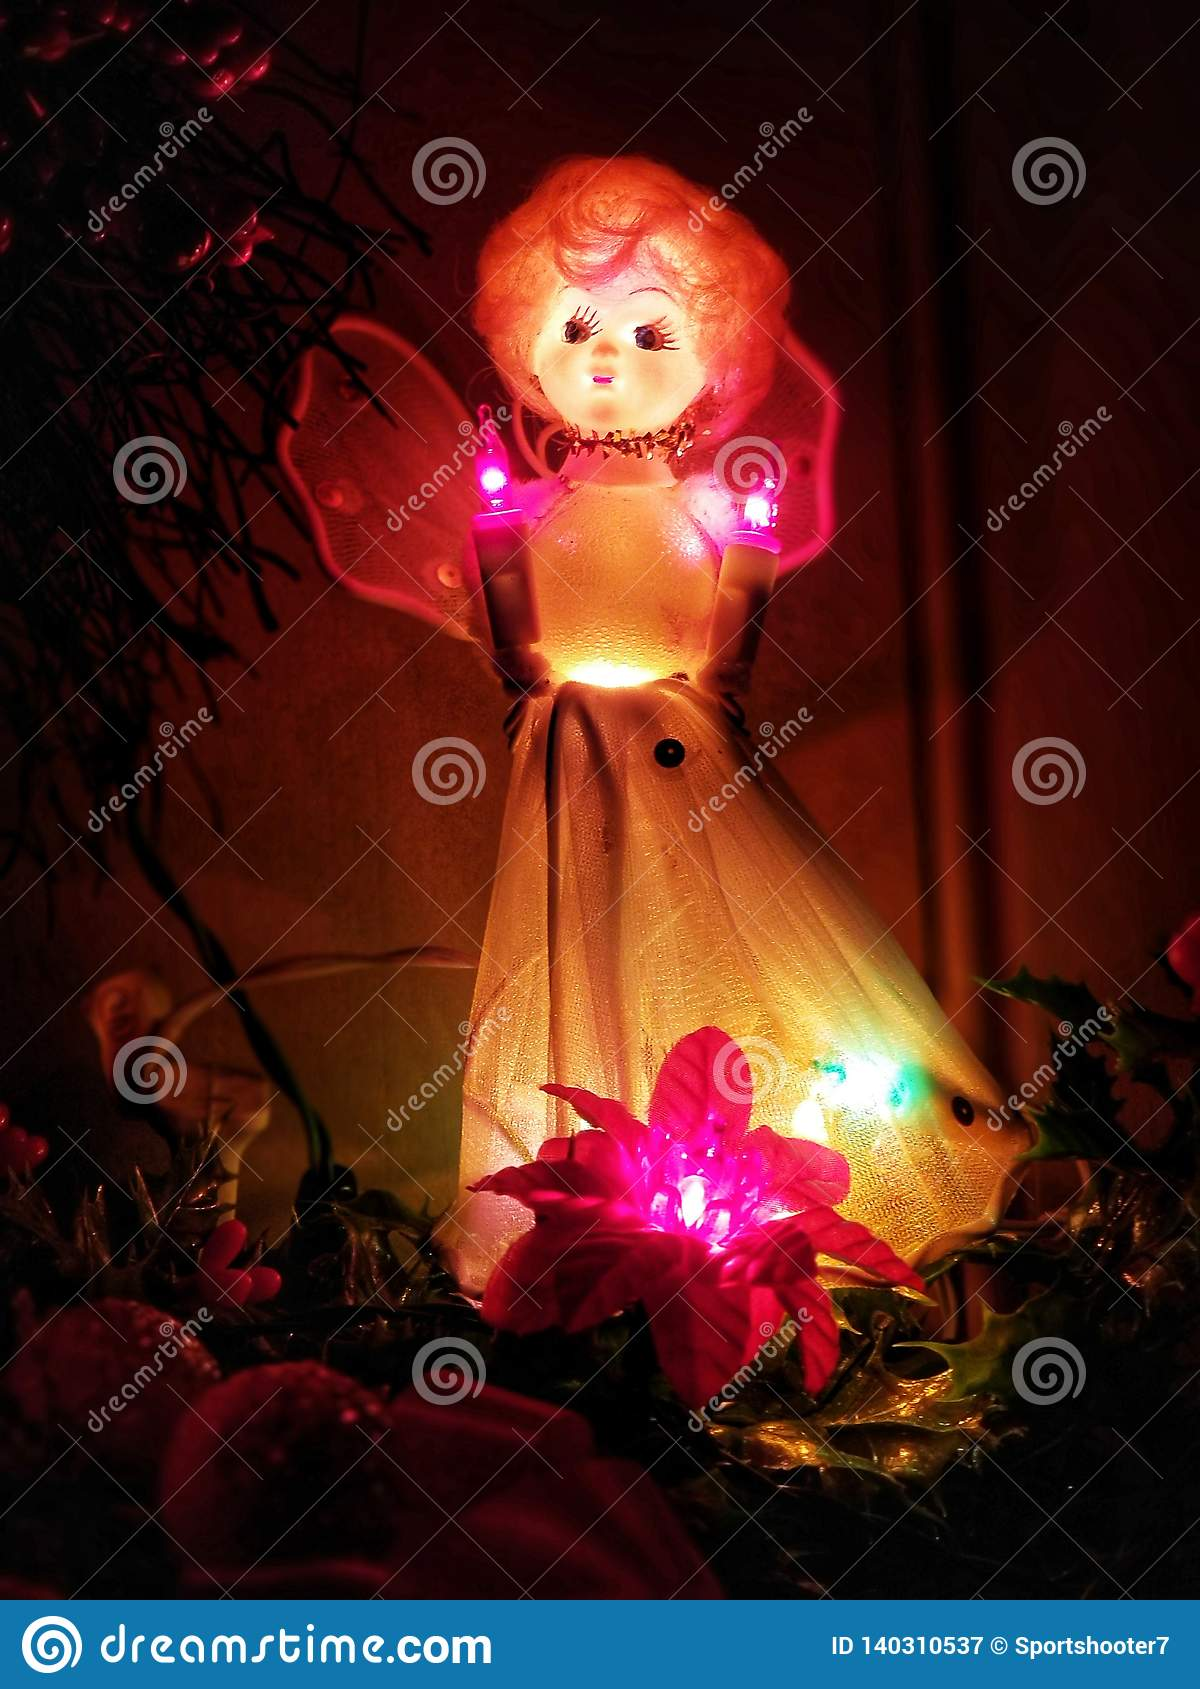 Illuminated vintage holiday seasonal Christmas Angel